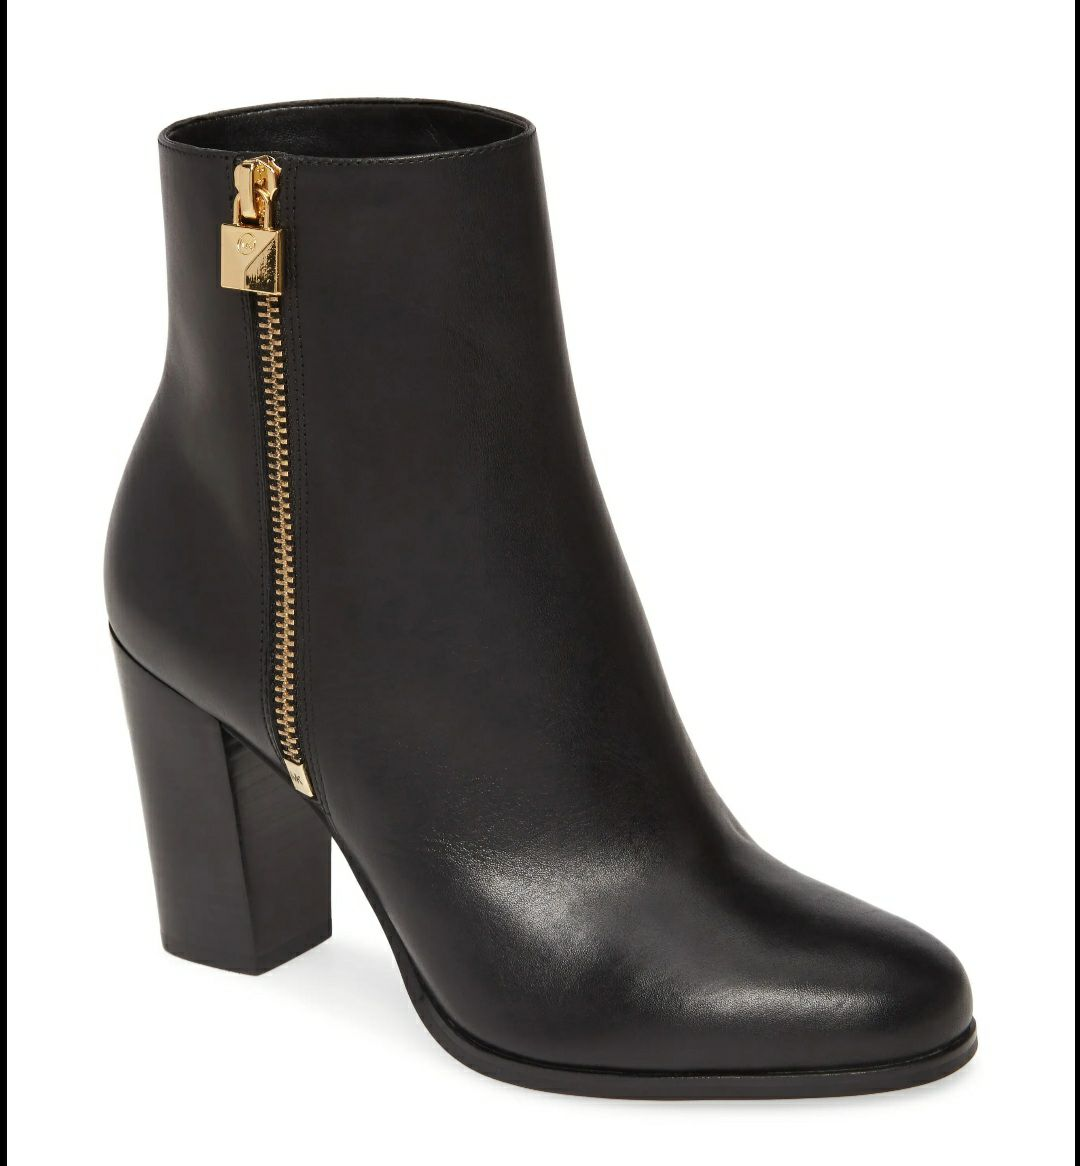 MICHAEL KORS LEATHER FRENCHIE BOOTIES